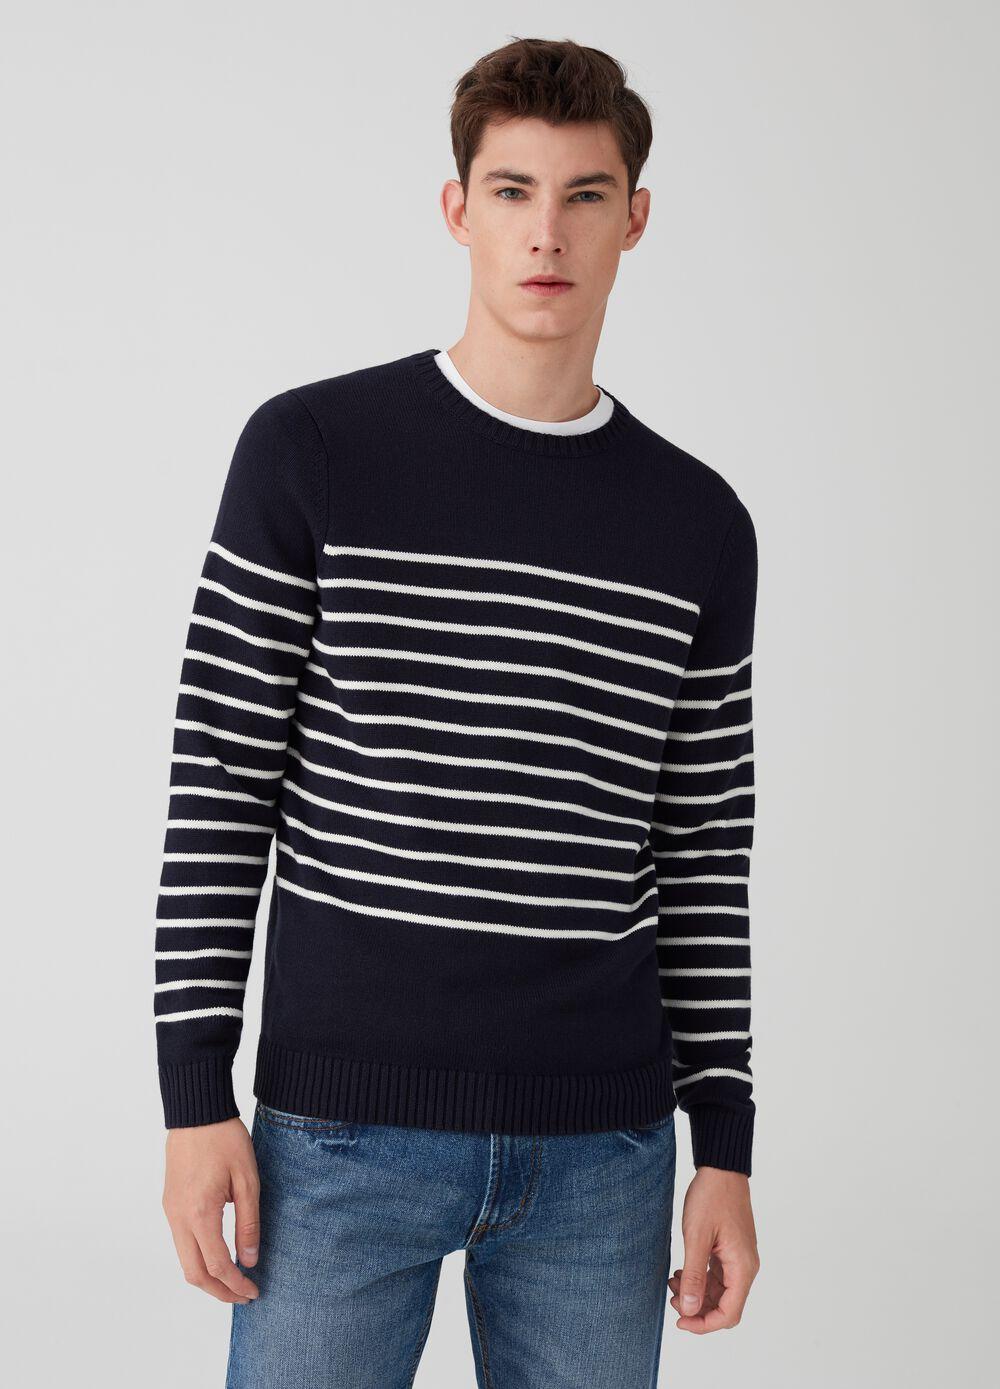 Knit pullover with striped pattern